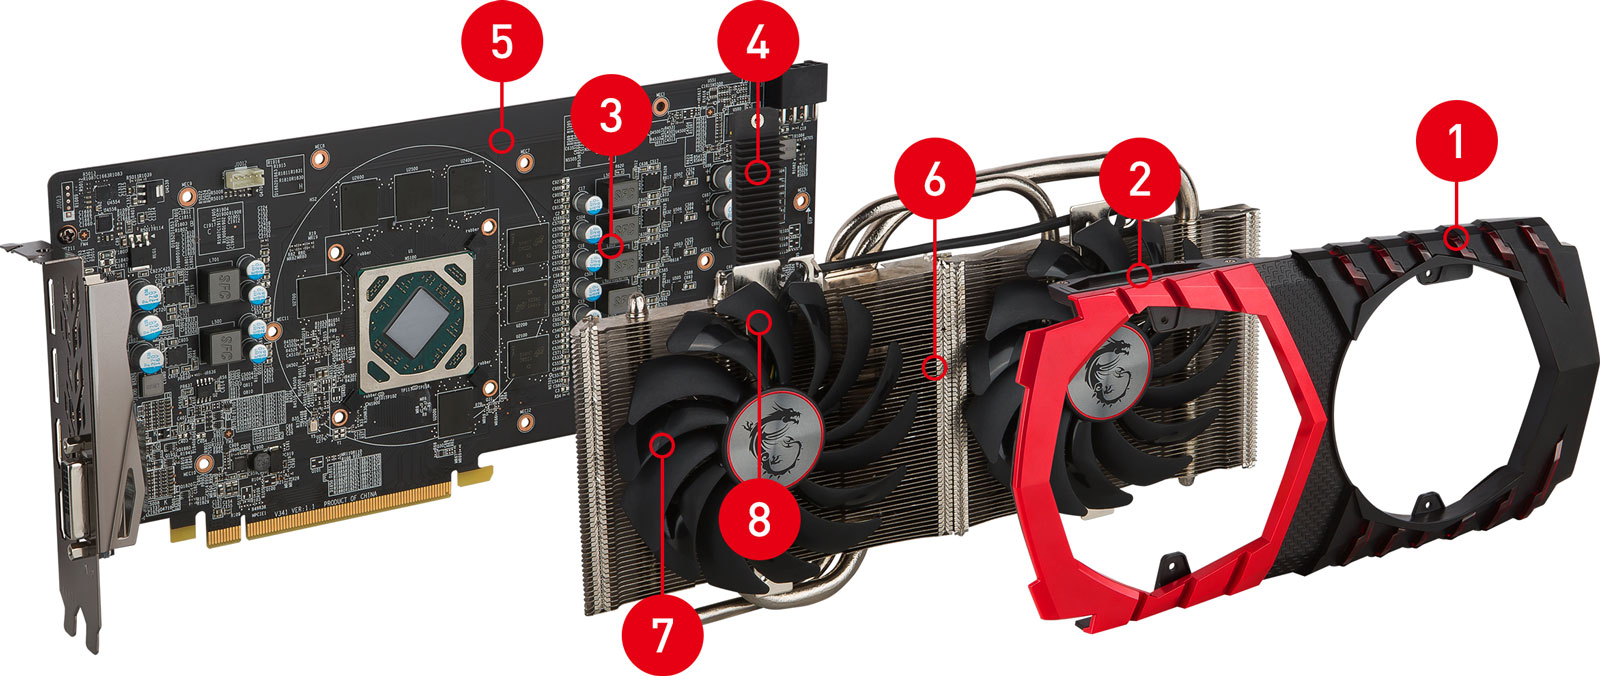 RX470 GAMING X 4G exploded view